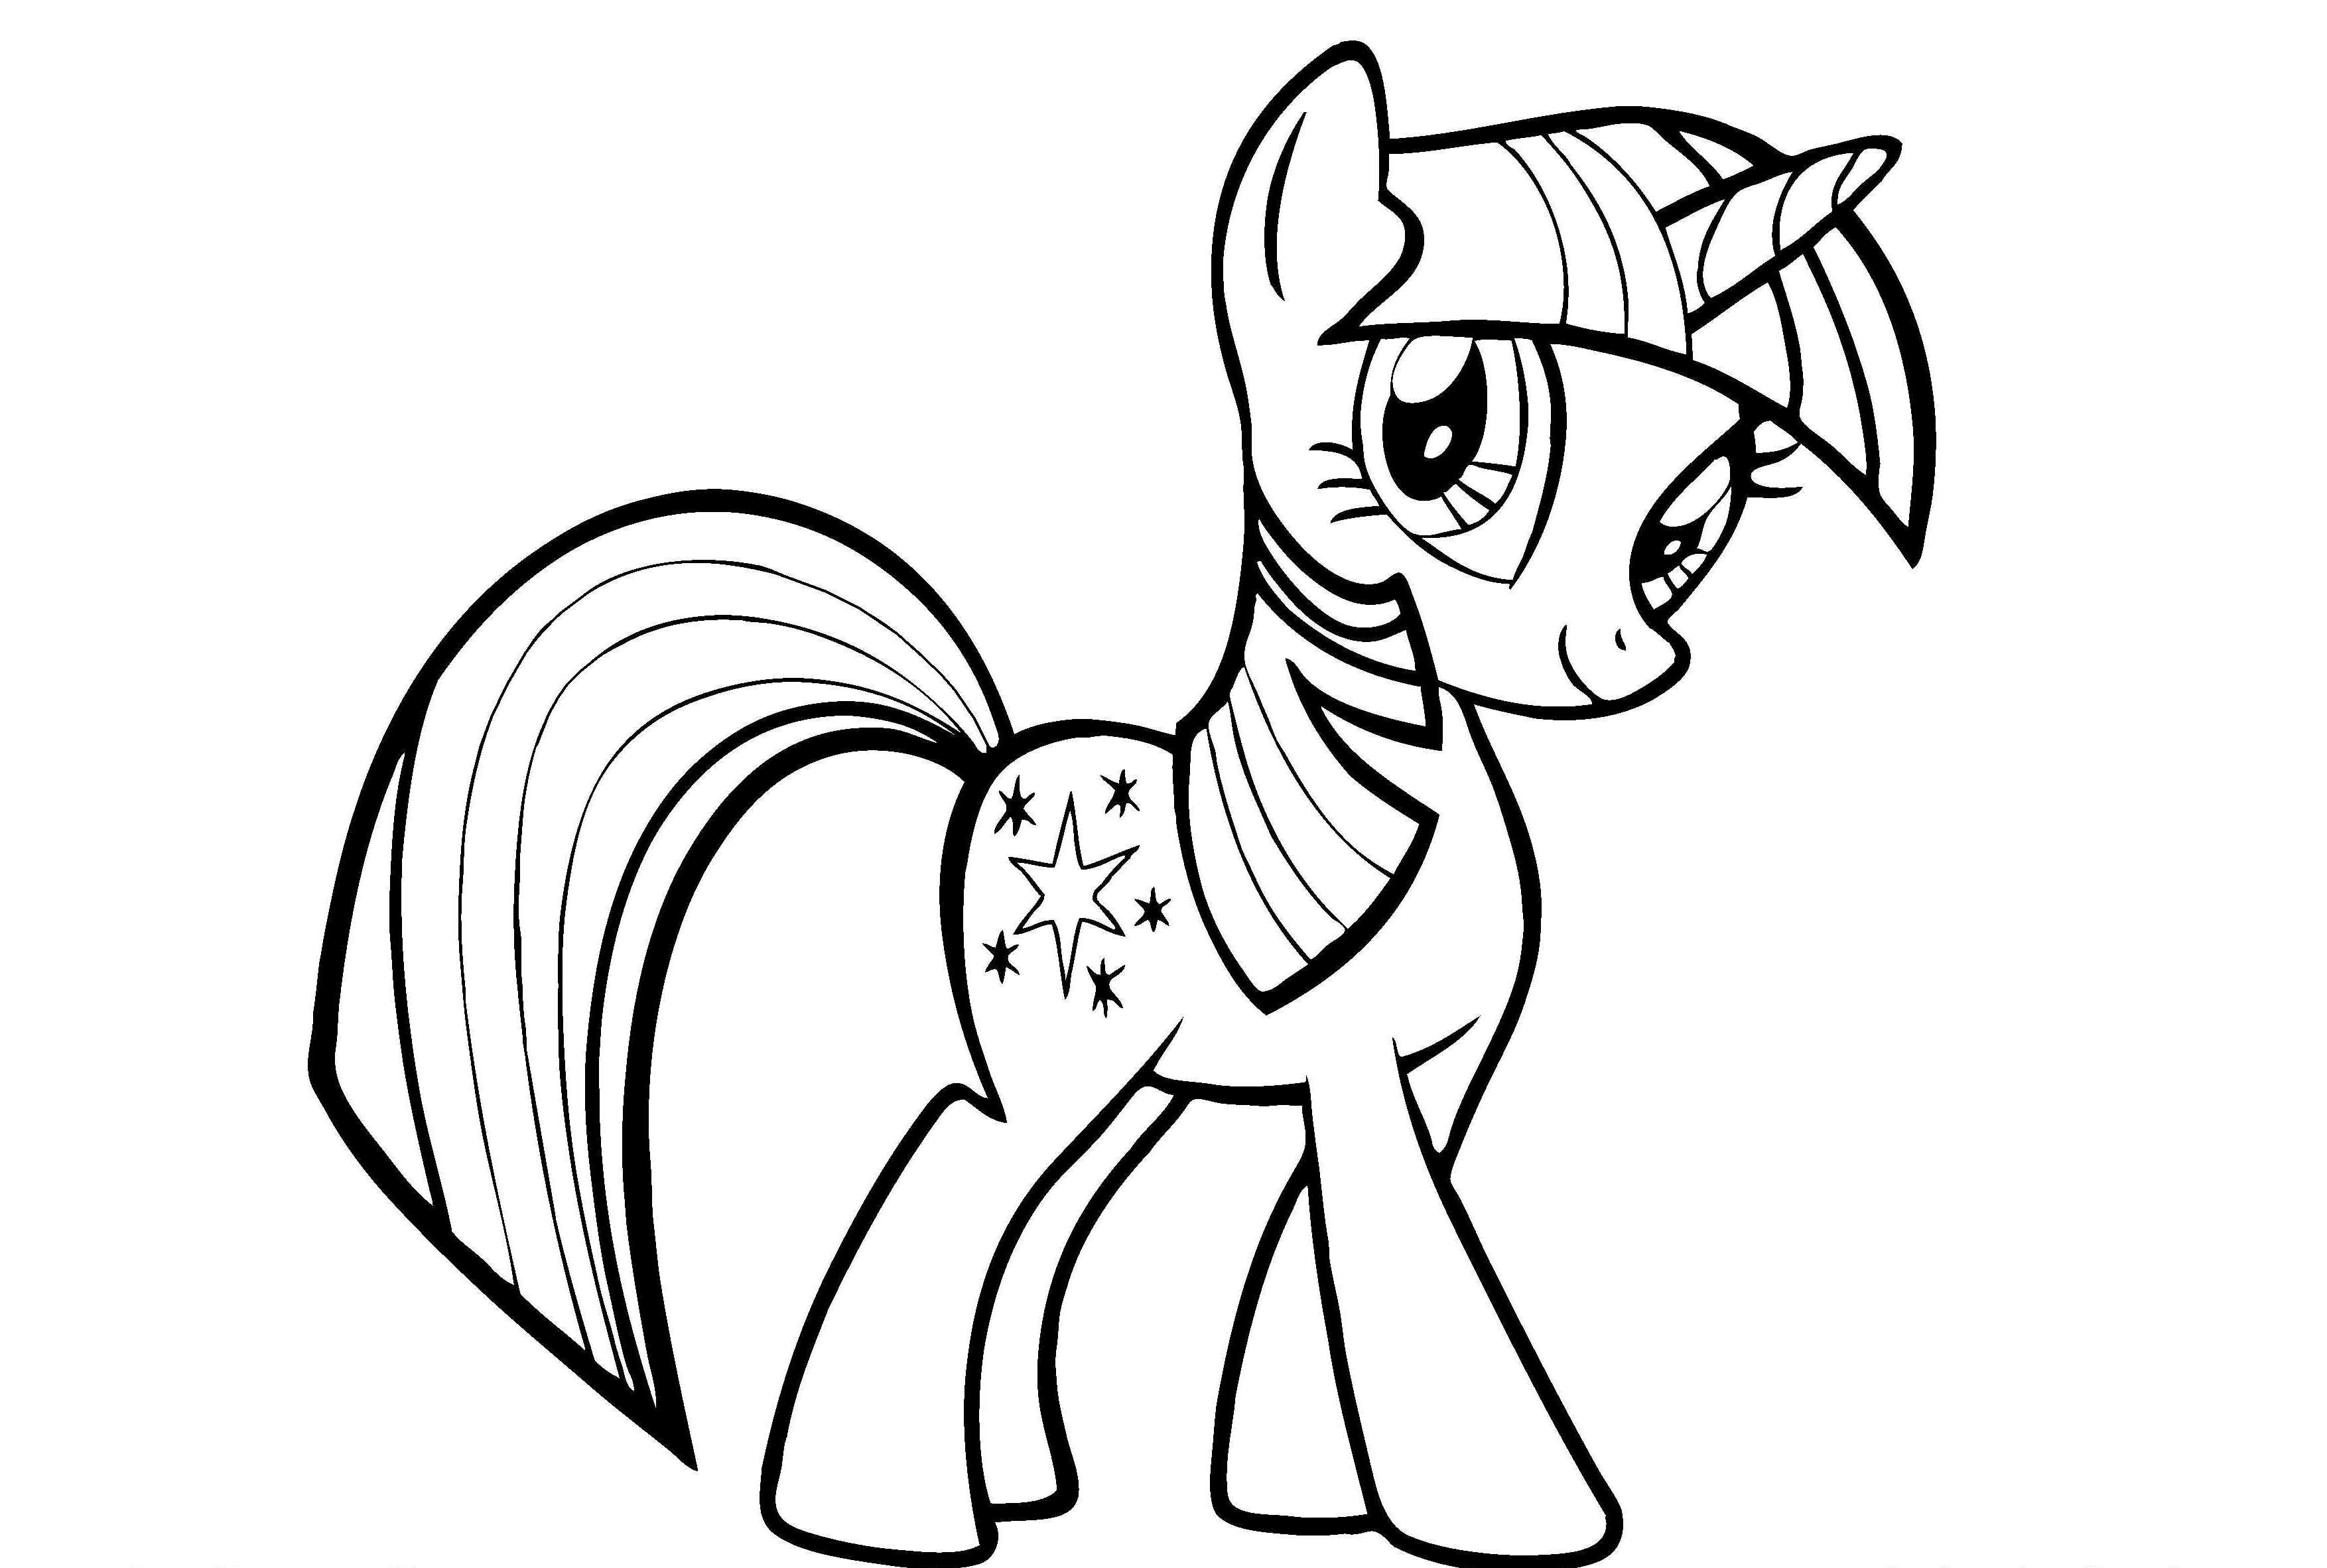 Adult Cute My Pretty Pony Coloring Pages Gallery Images cute print fluttershy my little pony friendship is magic coloring pages 1000 images about on pinterest and for kids images